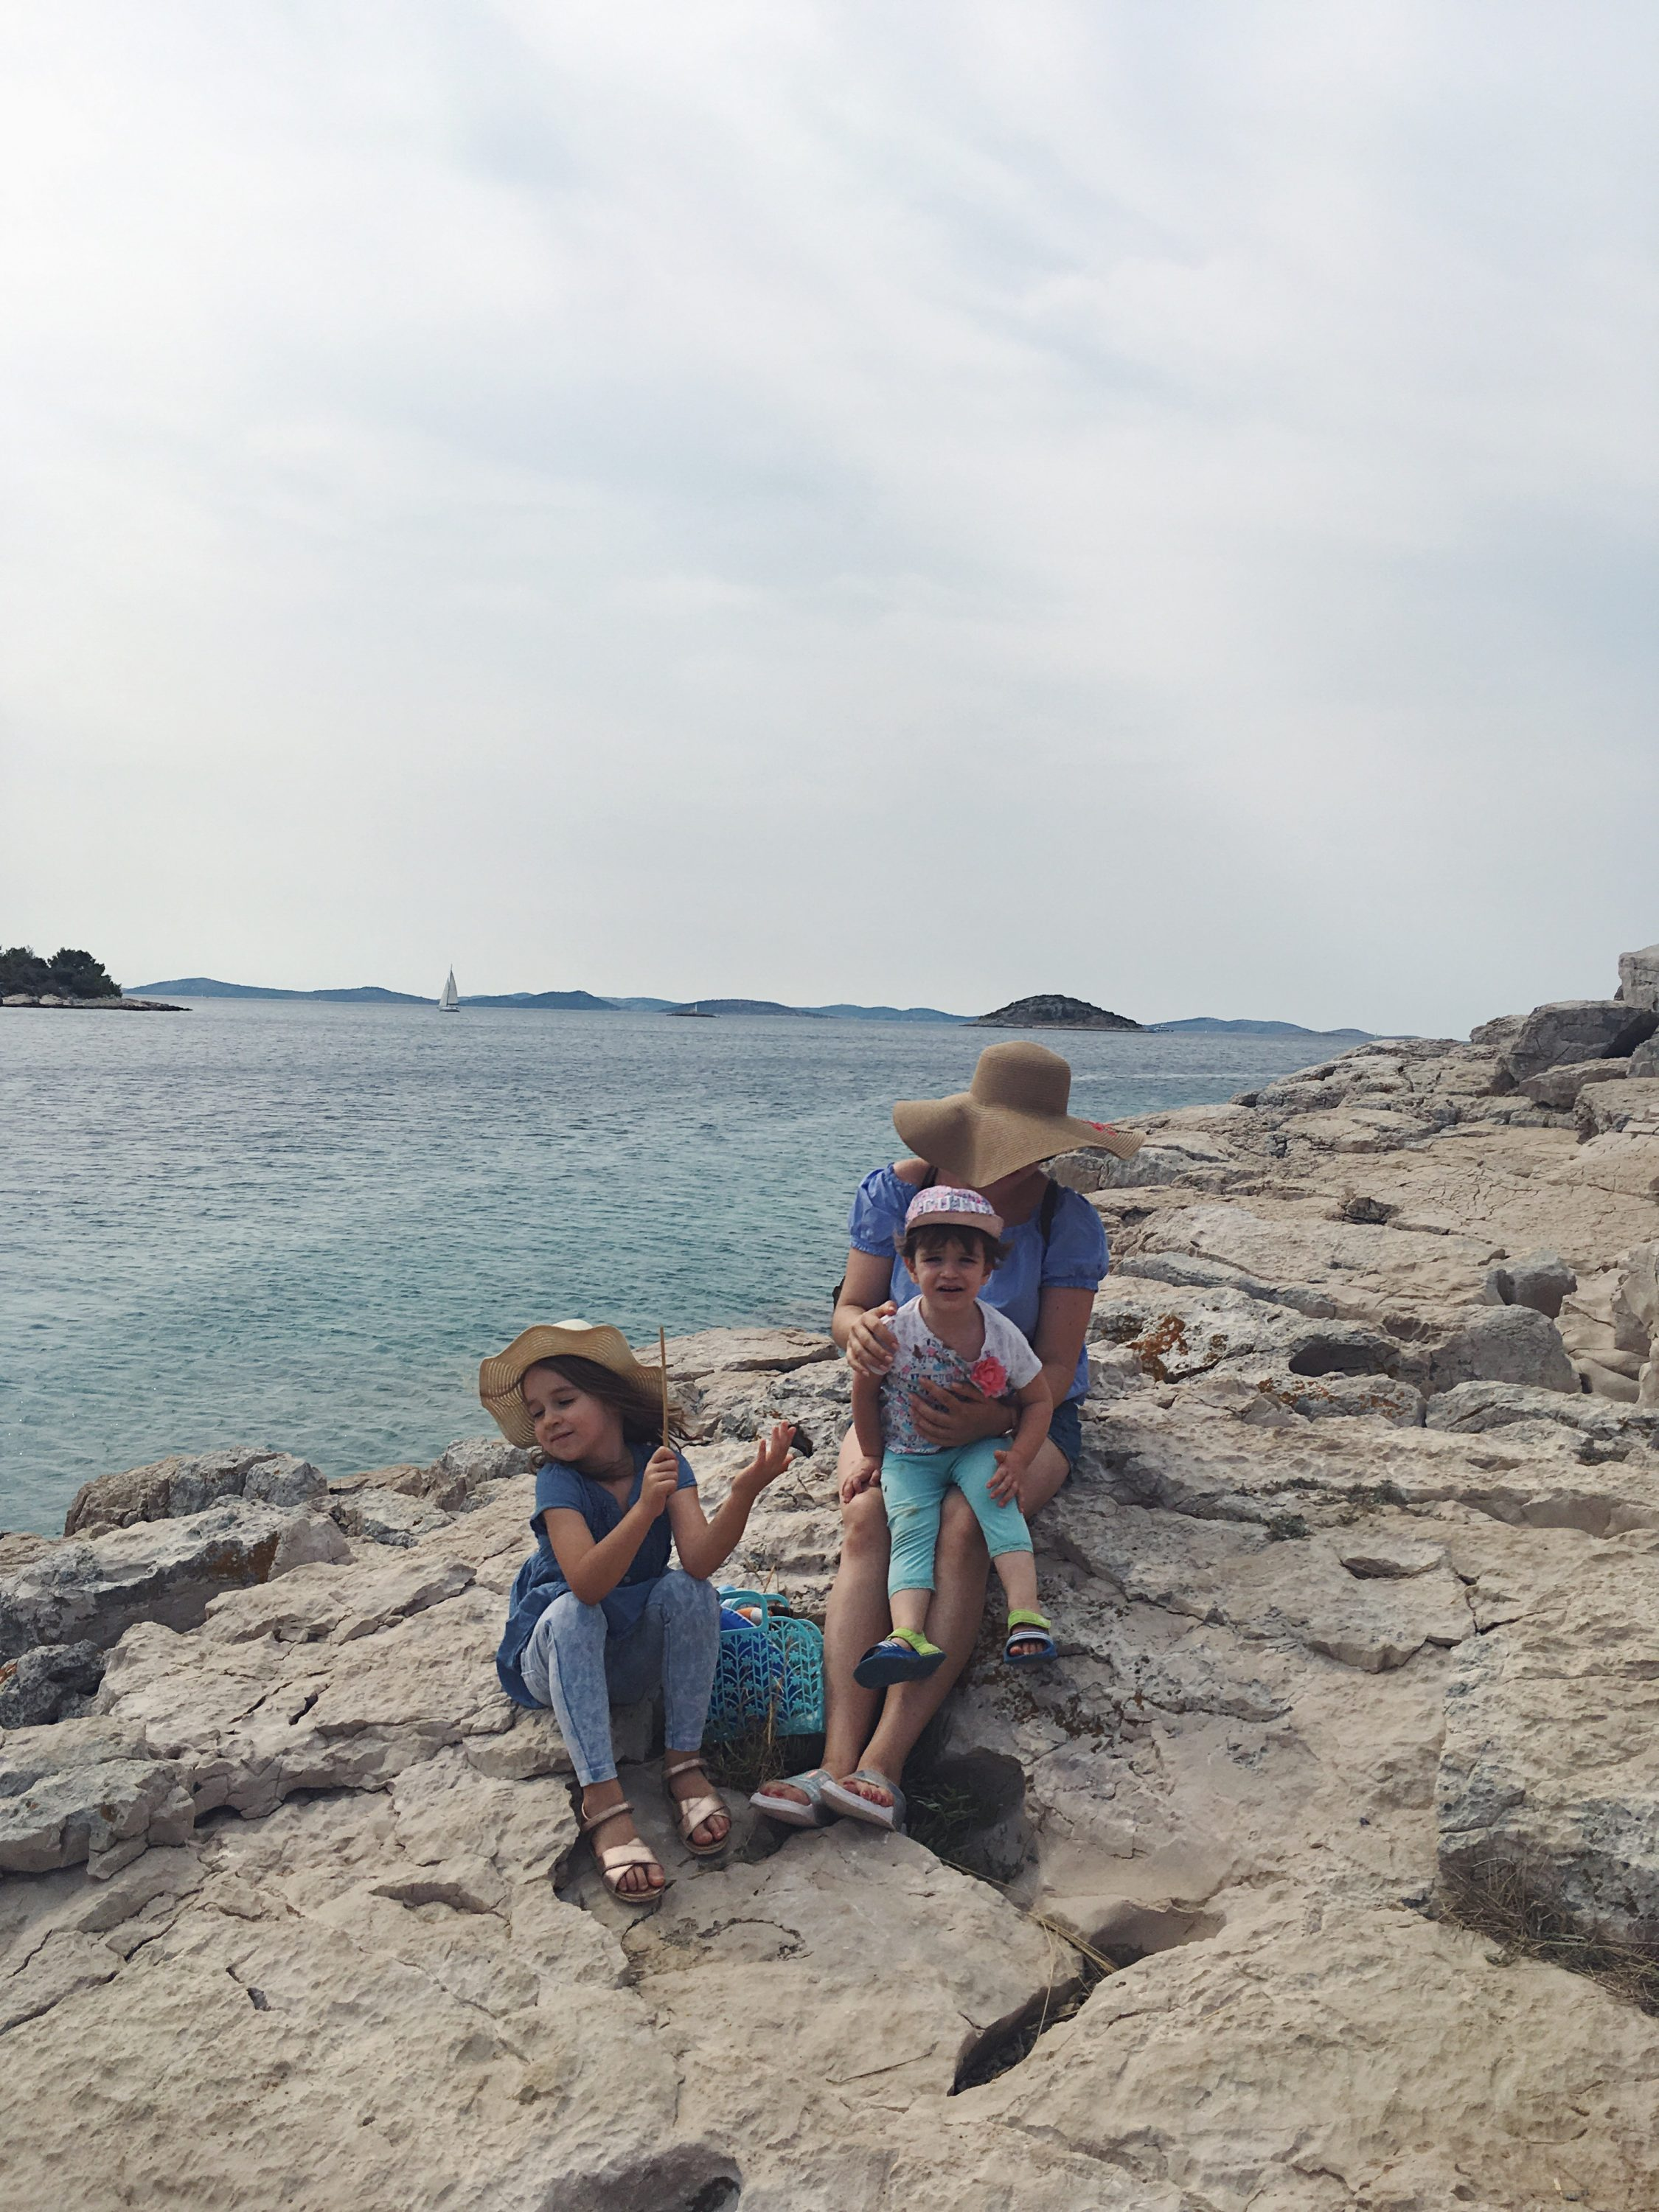 Murter Island Croatia full of life free spirit nature mom blogger jezera tisno happiness mama blogerica traveling kids lifestyle sea adriatic jadransko more more less ines blogger travel boat summer Murtar Kornati